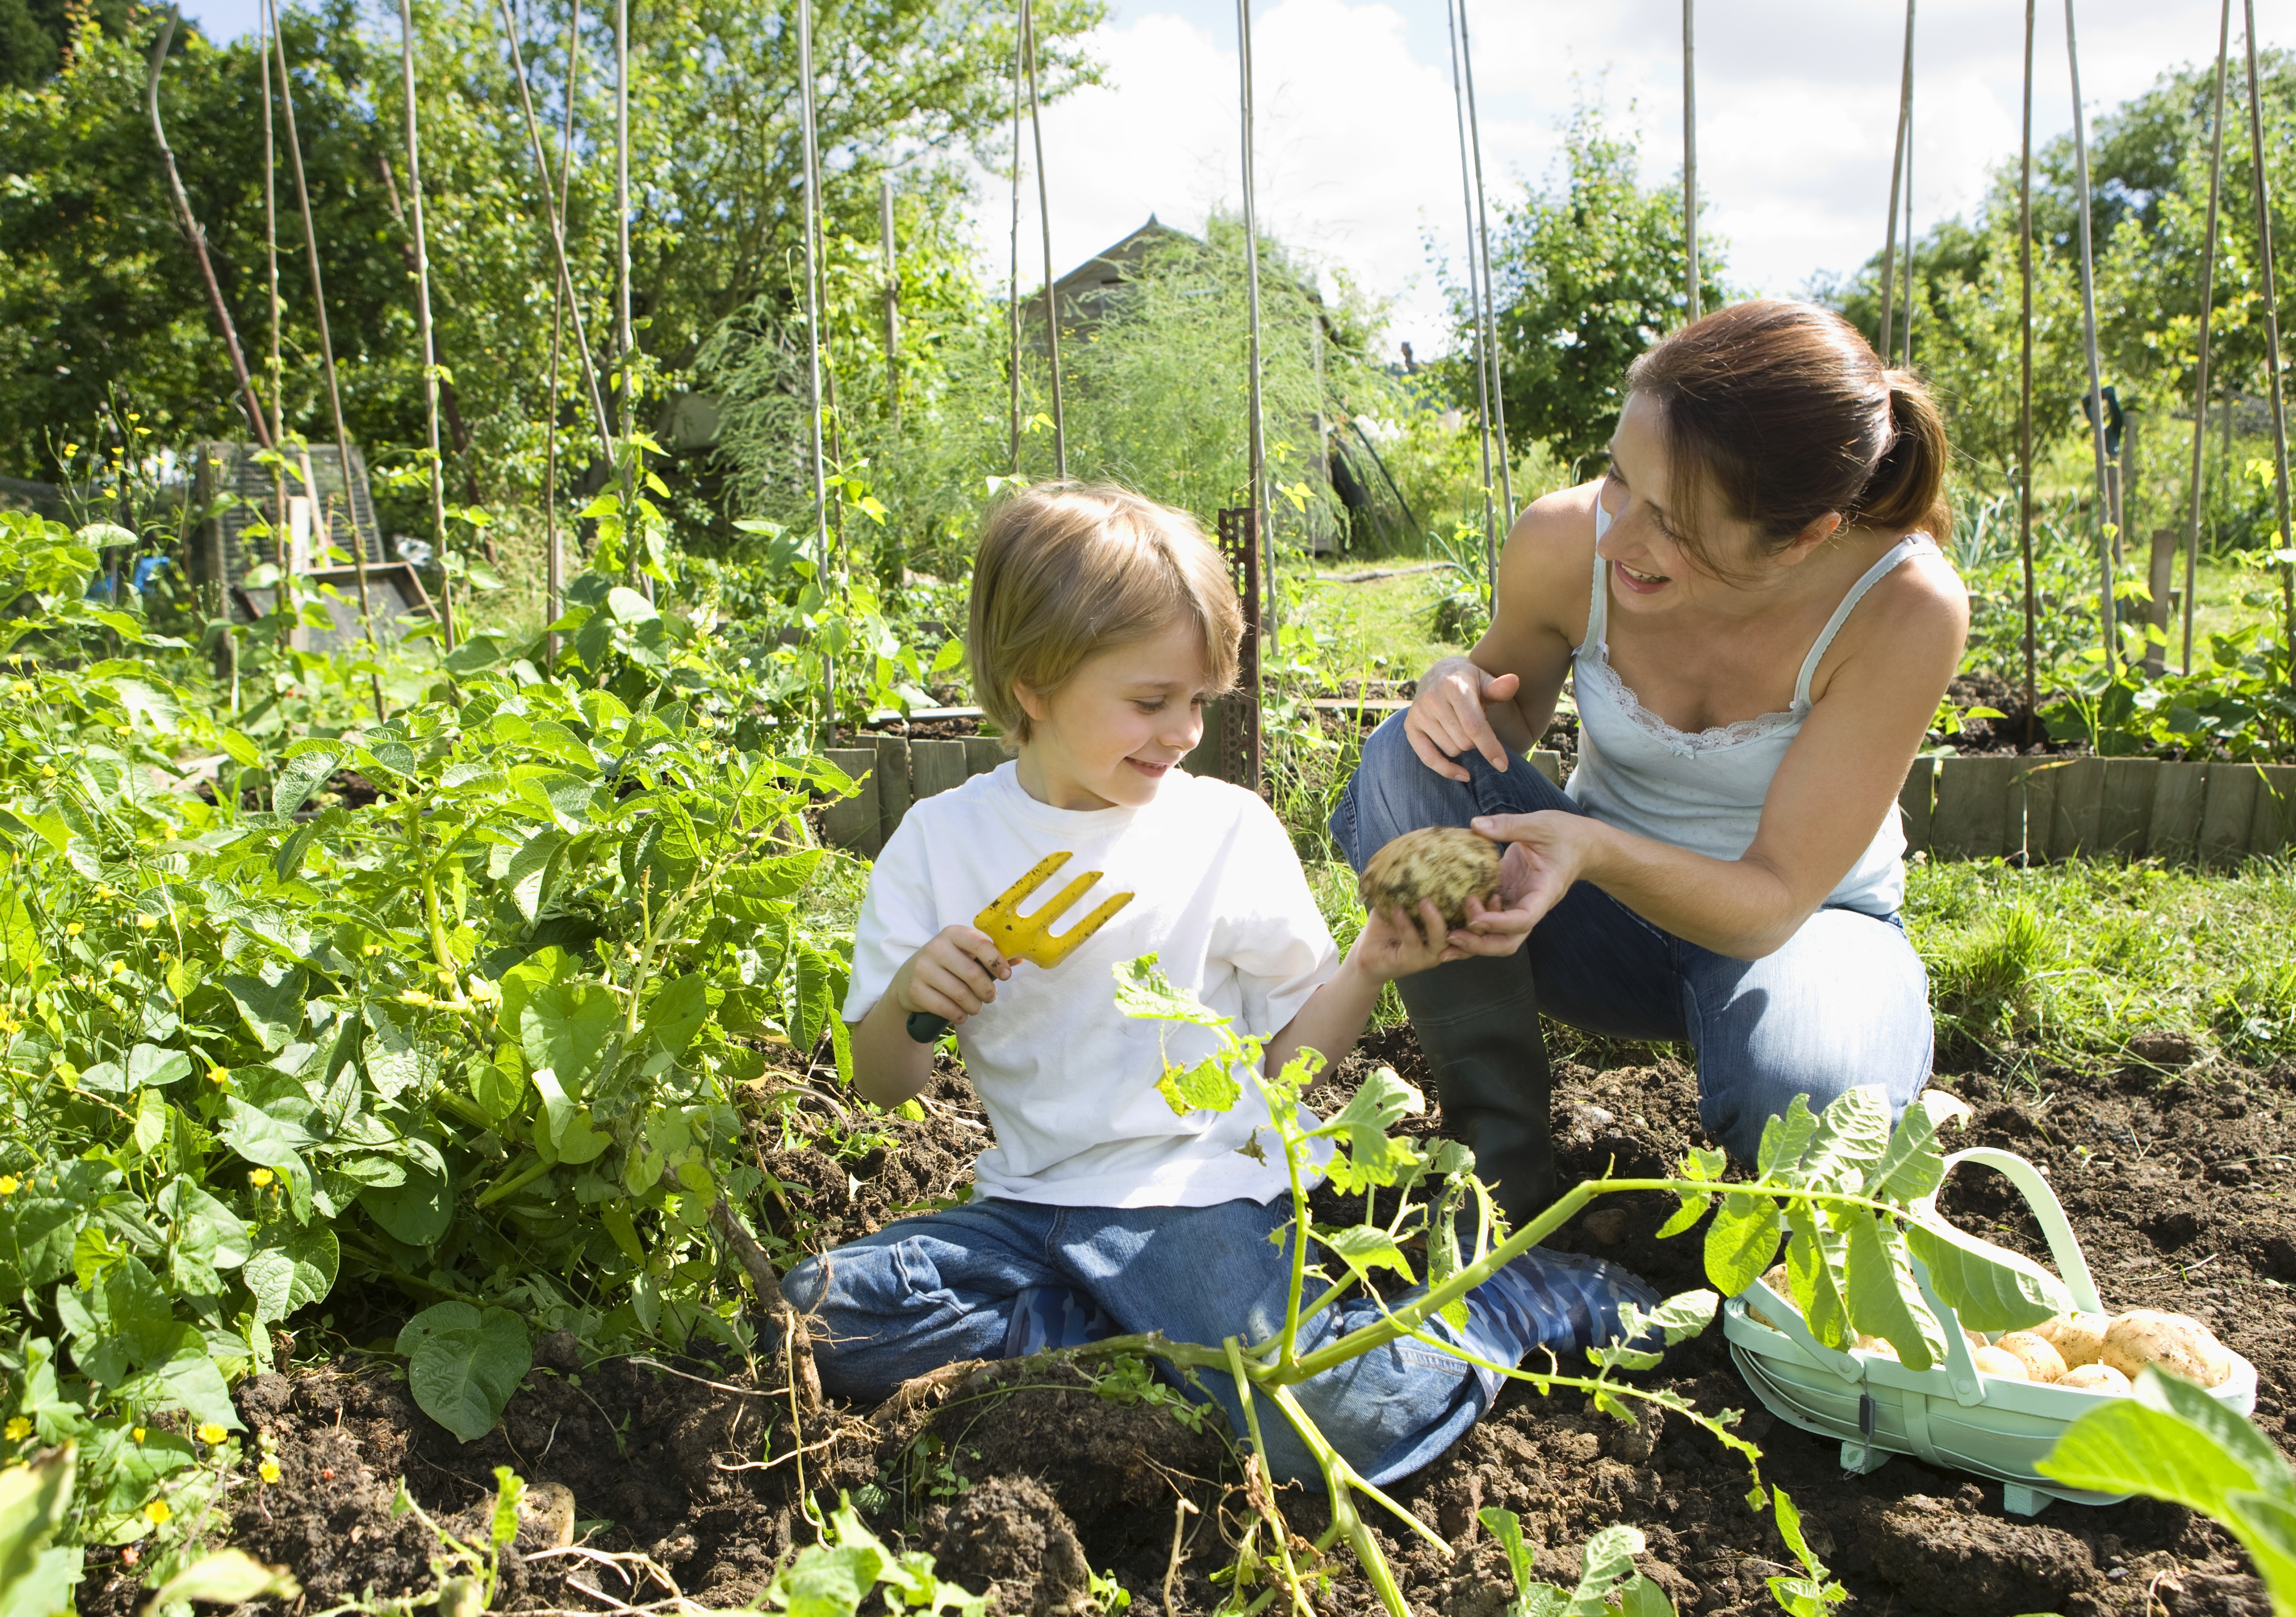 Taking care of plants and starting a gardening project can help to relieve some of the stress brought on by the COVID-19 pandemic, a group of UNSW Sydney cross-discipline experts say. Photo: Shutterstock